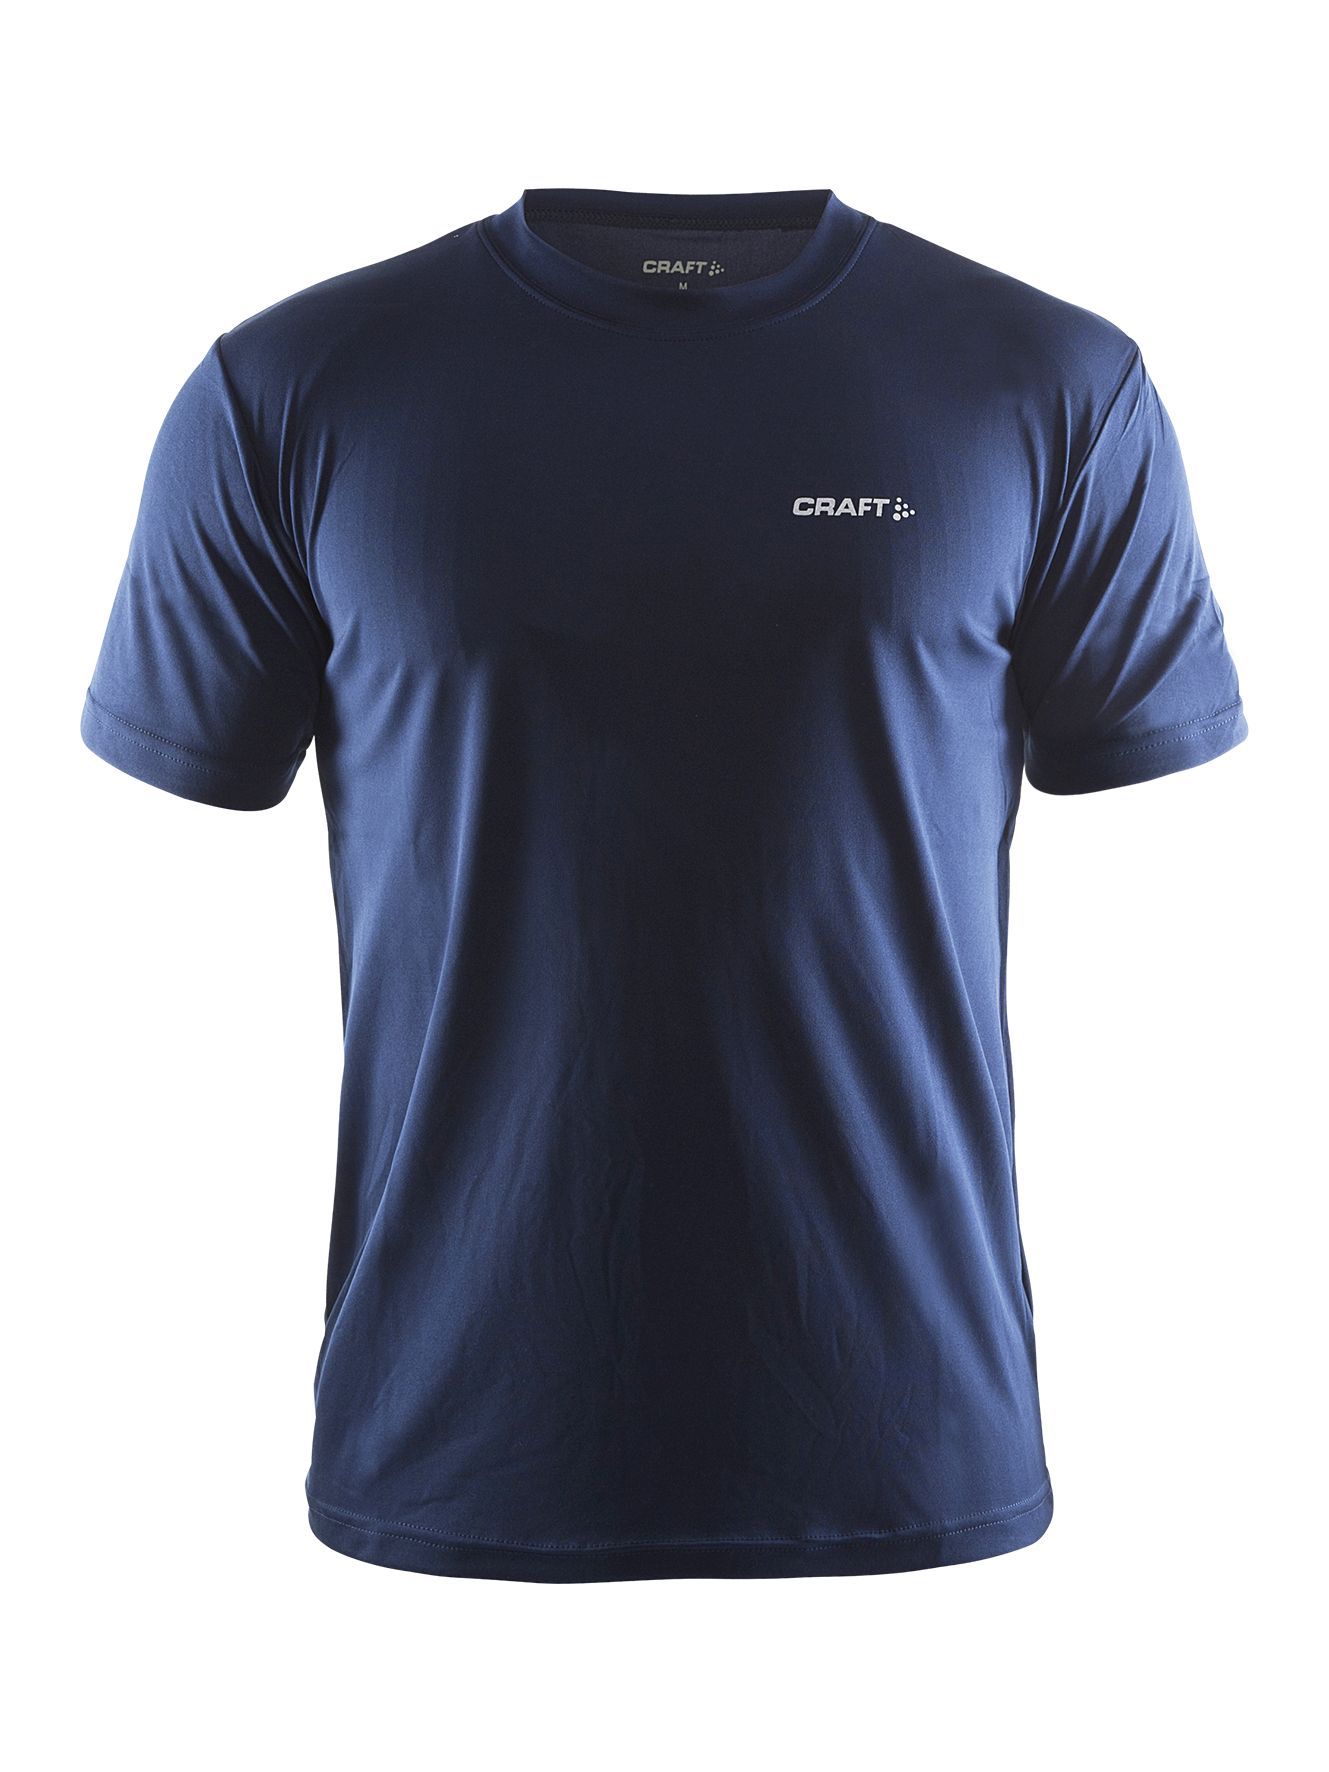 Craft Prime Tee men navy 4xl navy